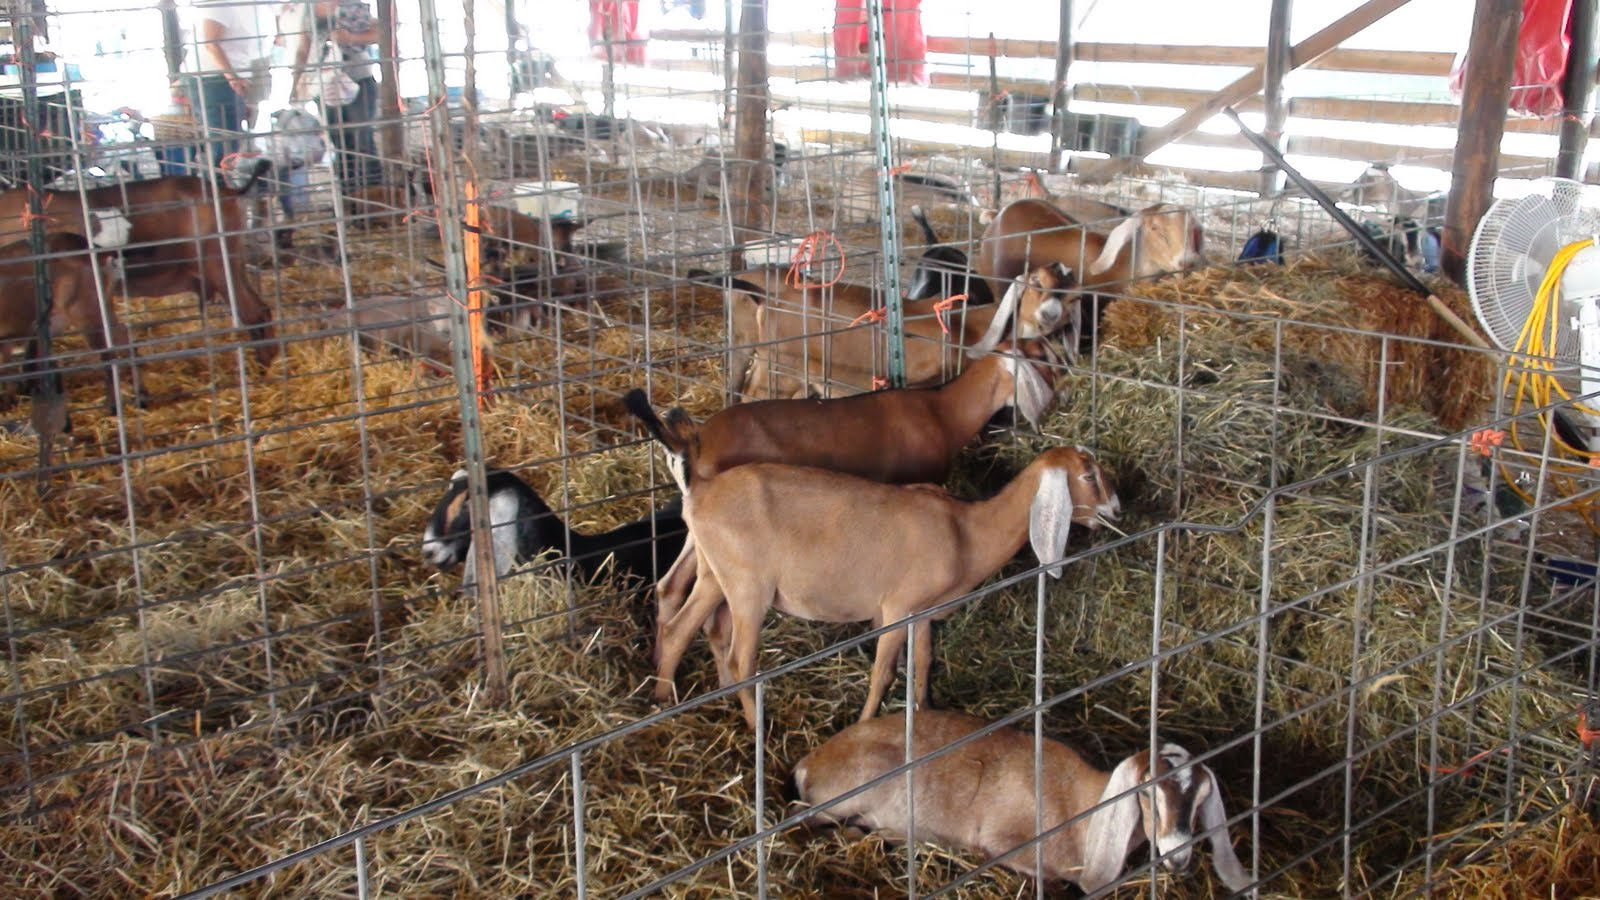 Illinois will county peotone - Goats Eat Hay At The Will County Fair In Peotone Illinois